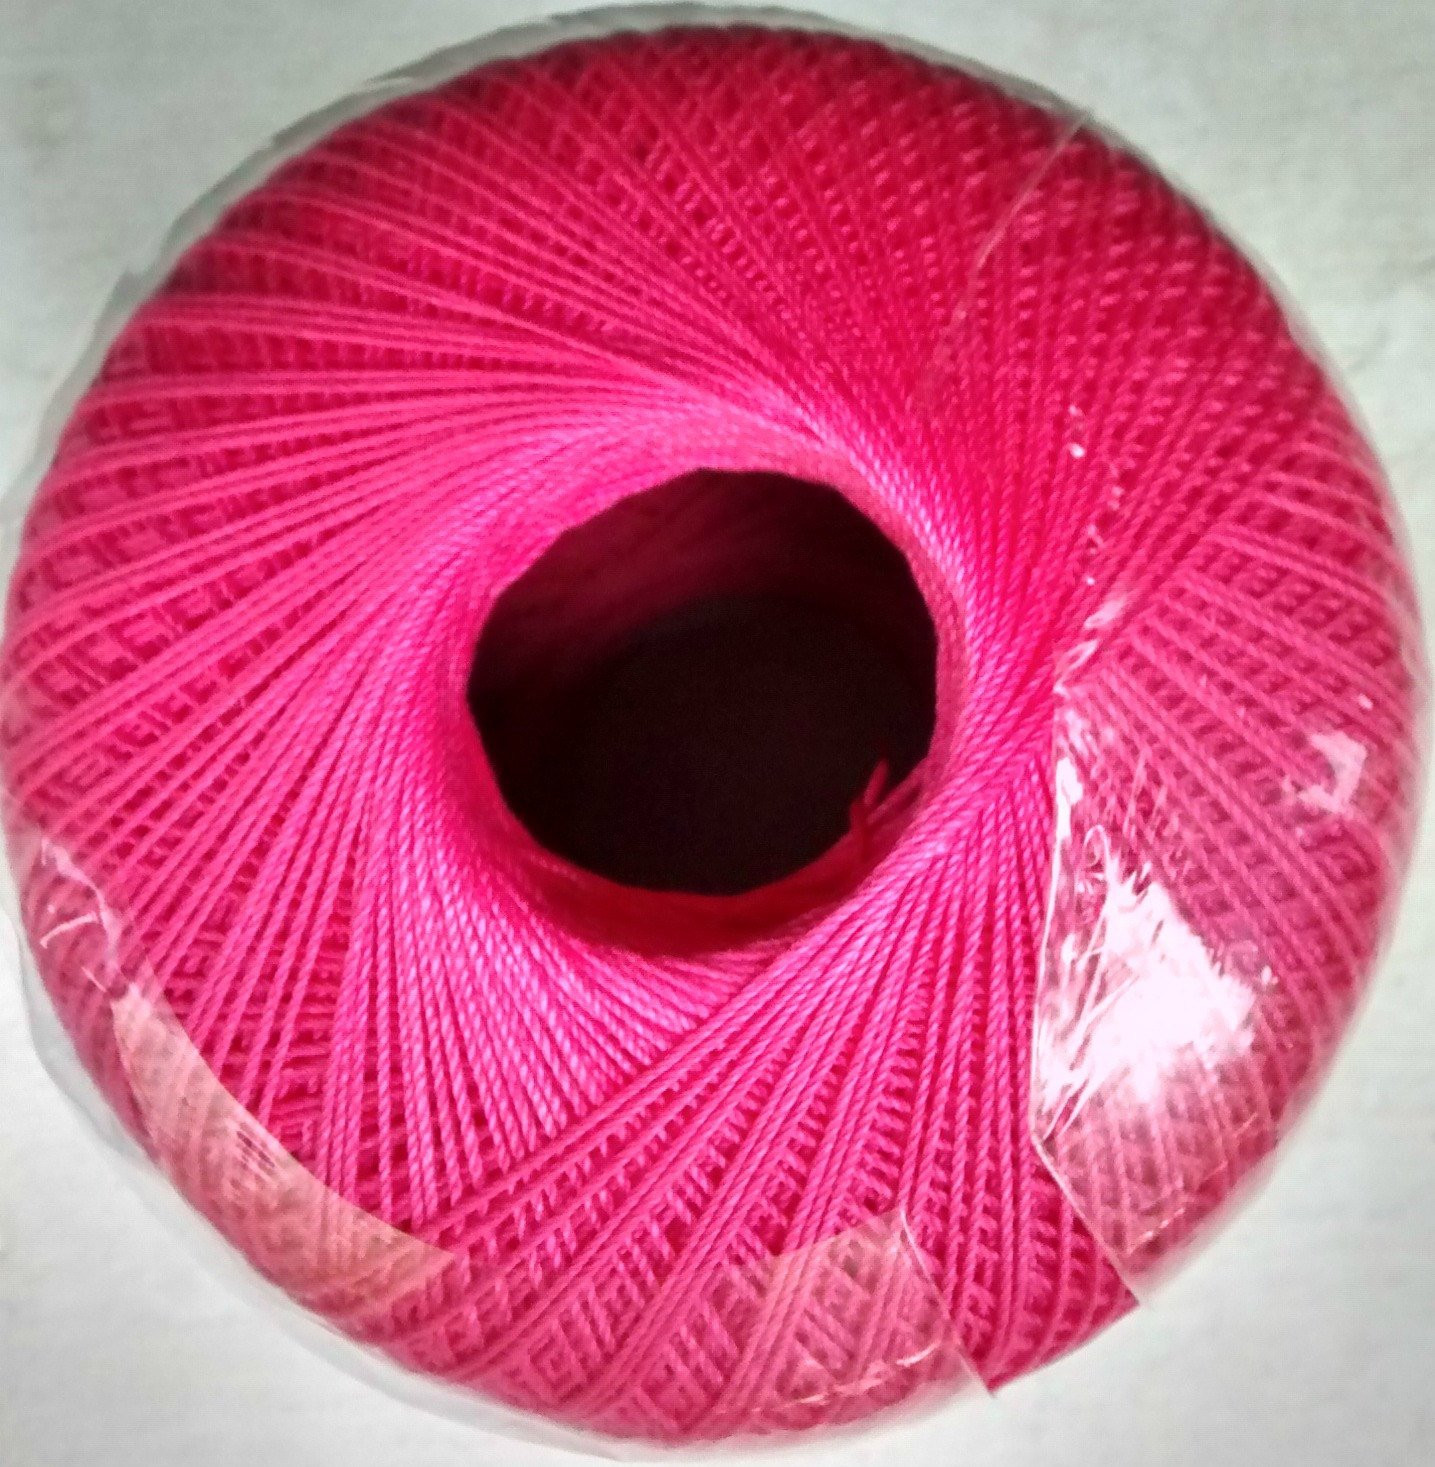 Size 10 Crochet Thread Best Of Aunt Lydia S Crochet Thread Size 10 Hot Pink by Of Luxury 49 Models Size 10 Crochet Thread